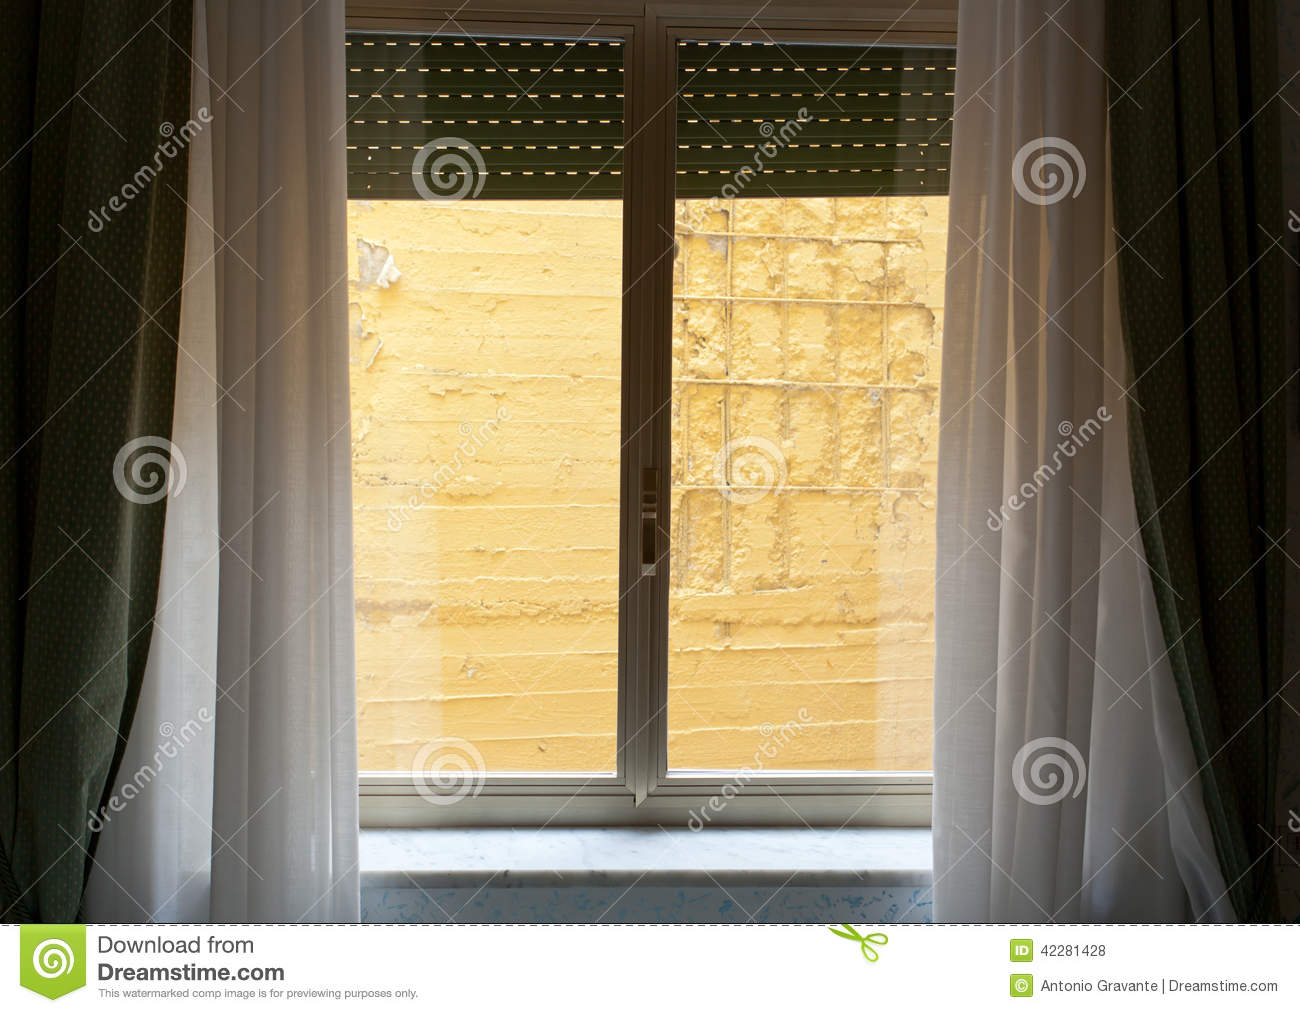 Hotel Room With Wall View Stock Photo Image 42281428